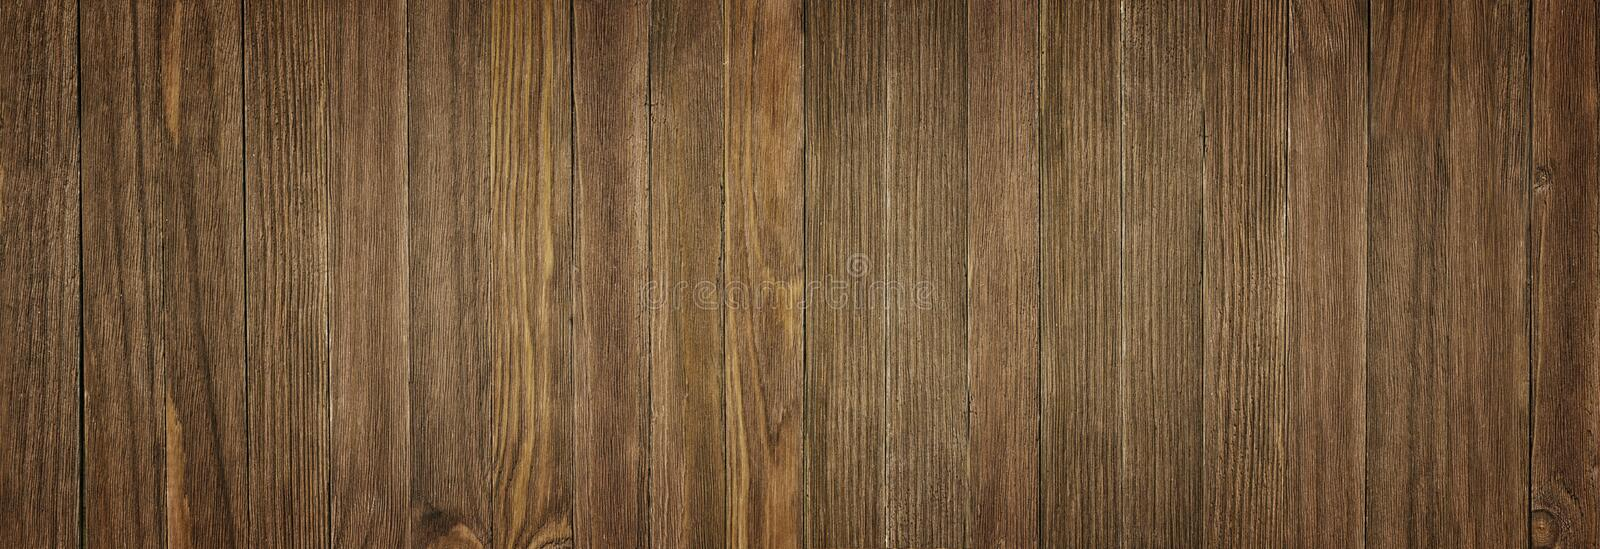 Real natural wood texture and surface background, panorama royalty free stock images